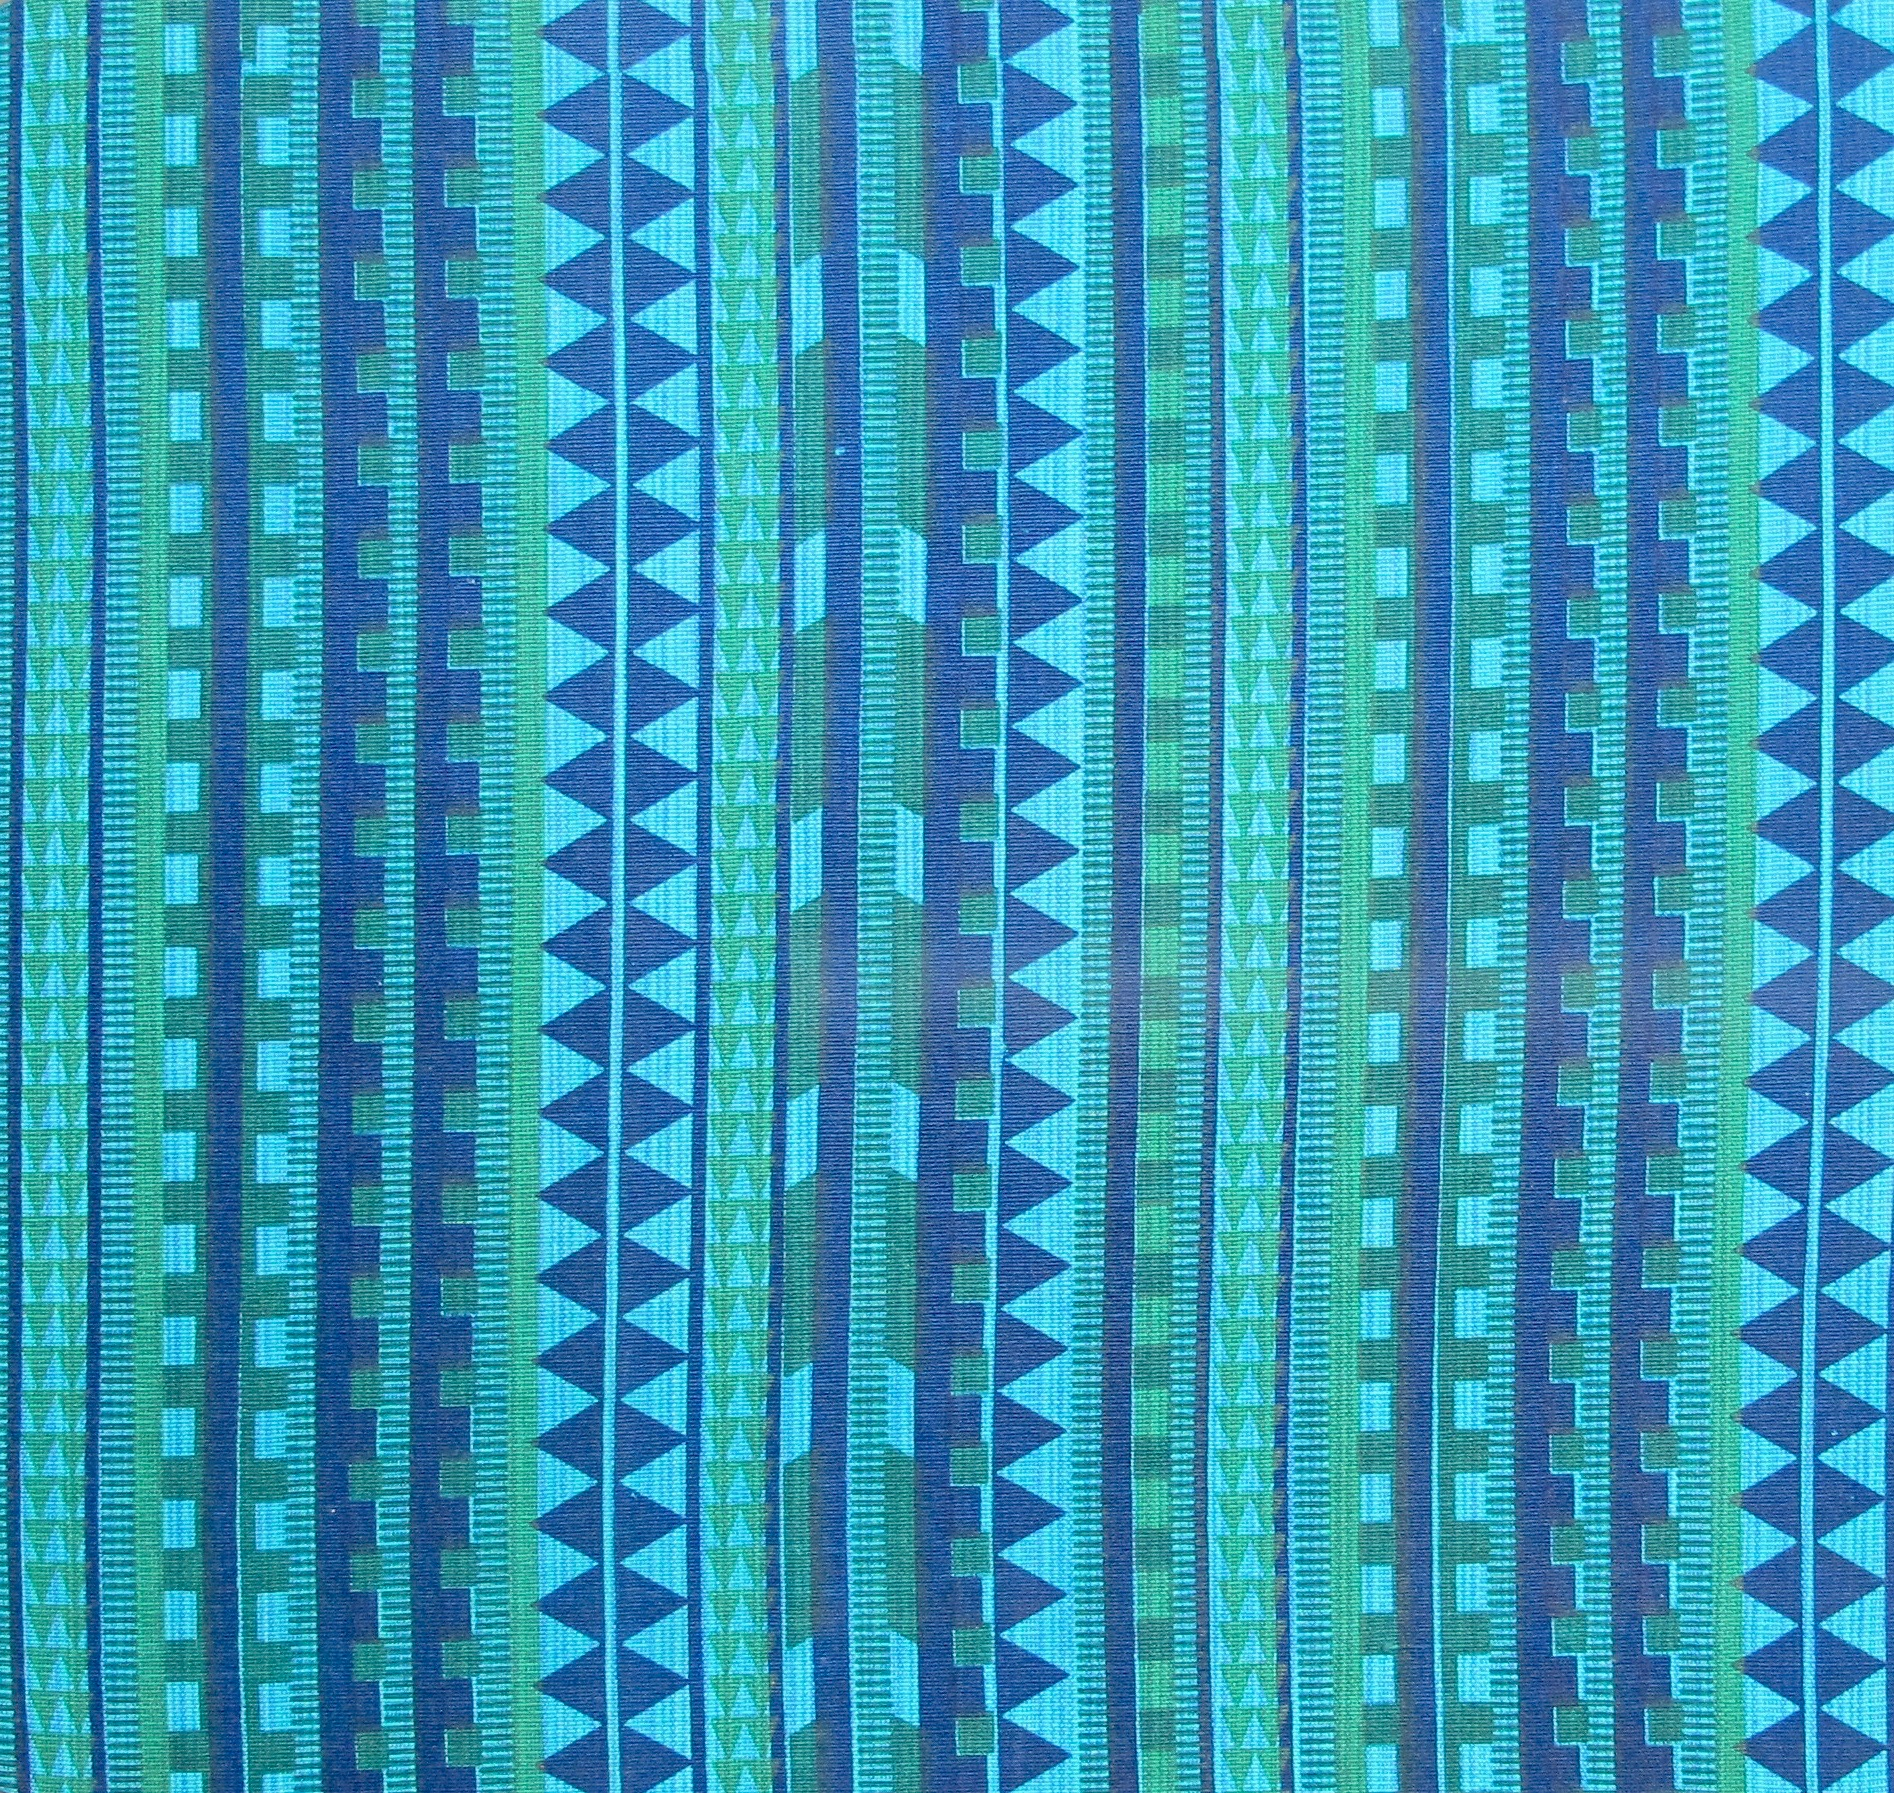 Nagastripes aqua green